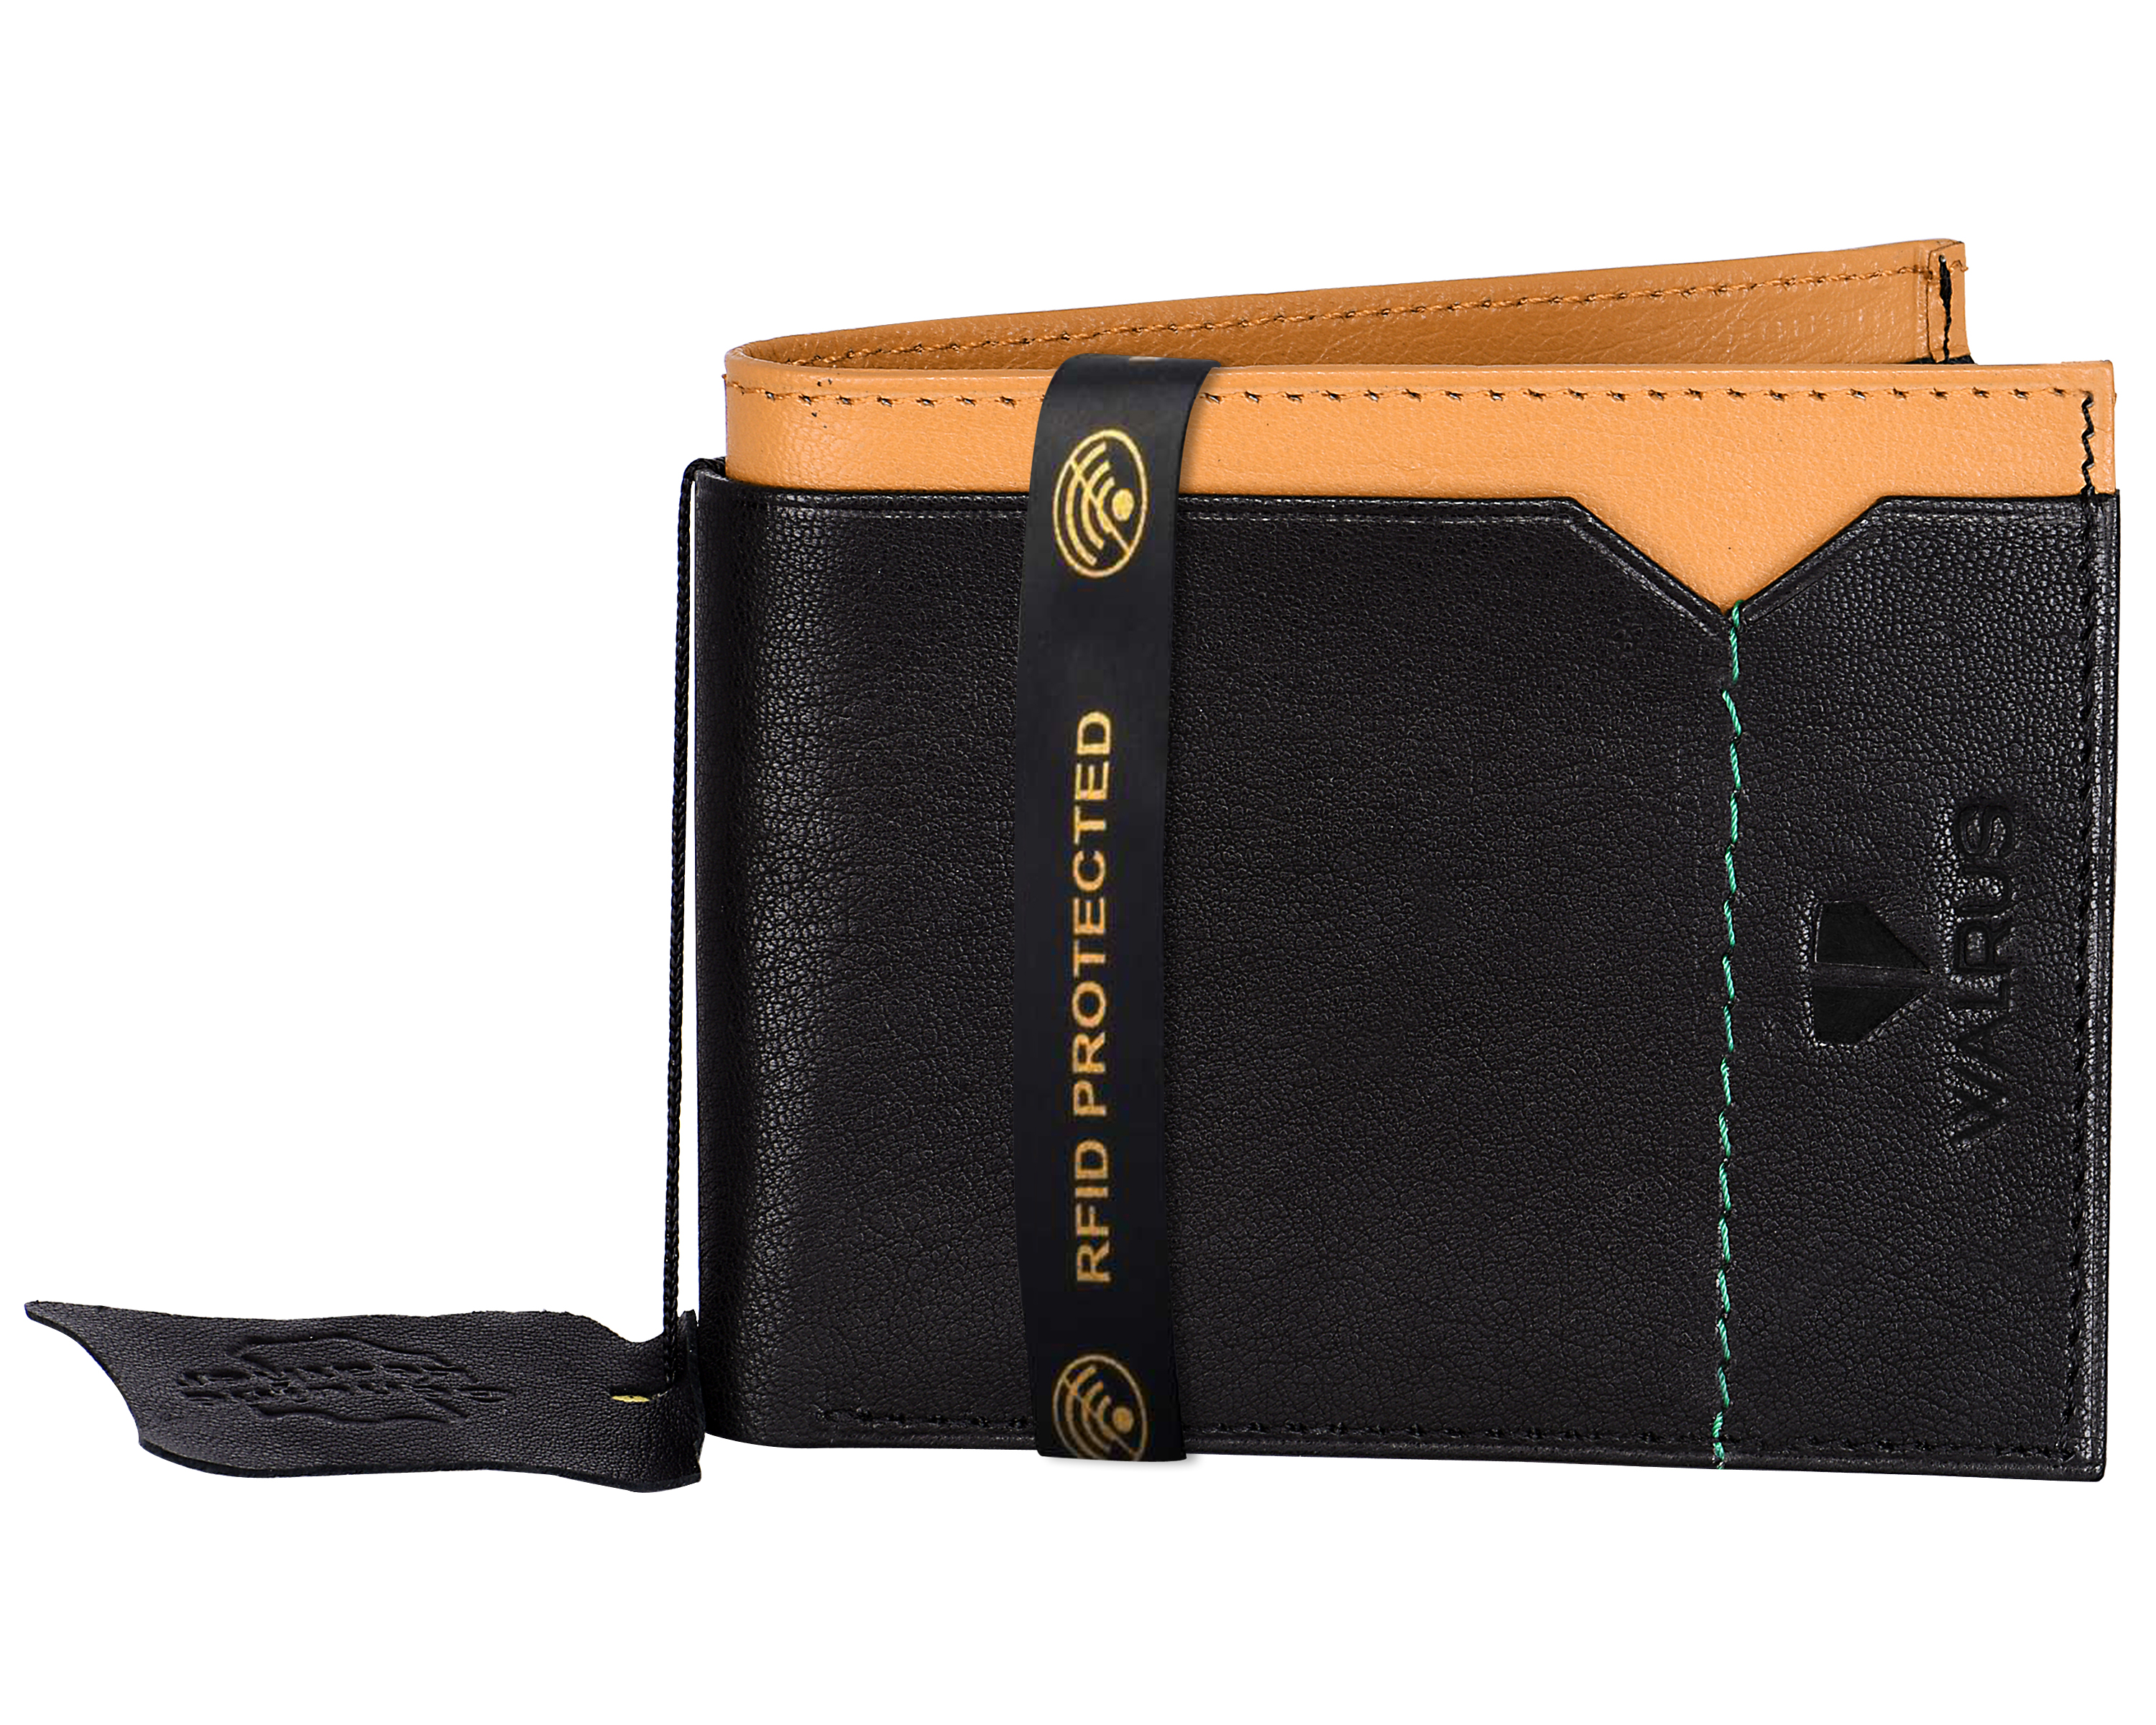 Walrus | Walrus Imperial Black Vegan Leather Men Wallet With RFID Protection.